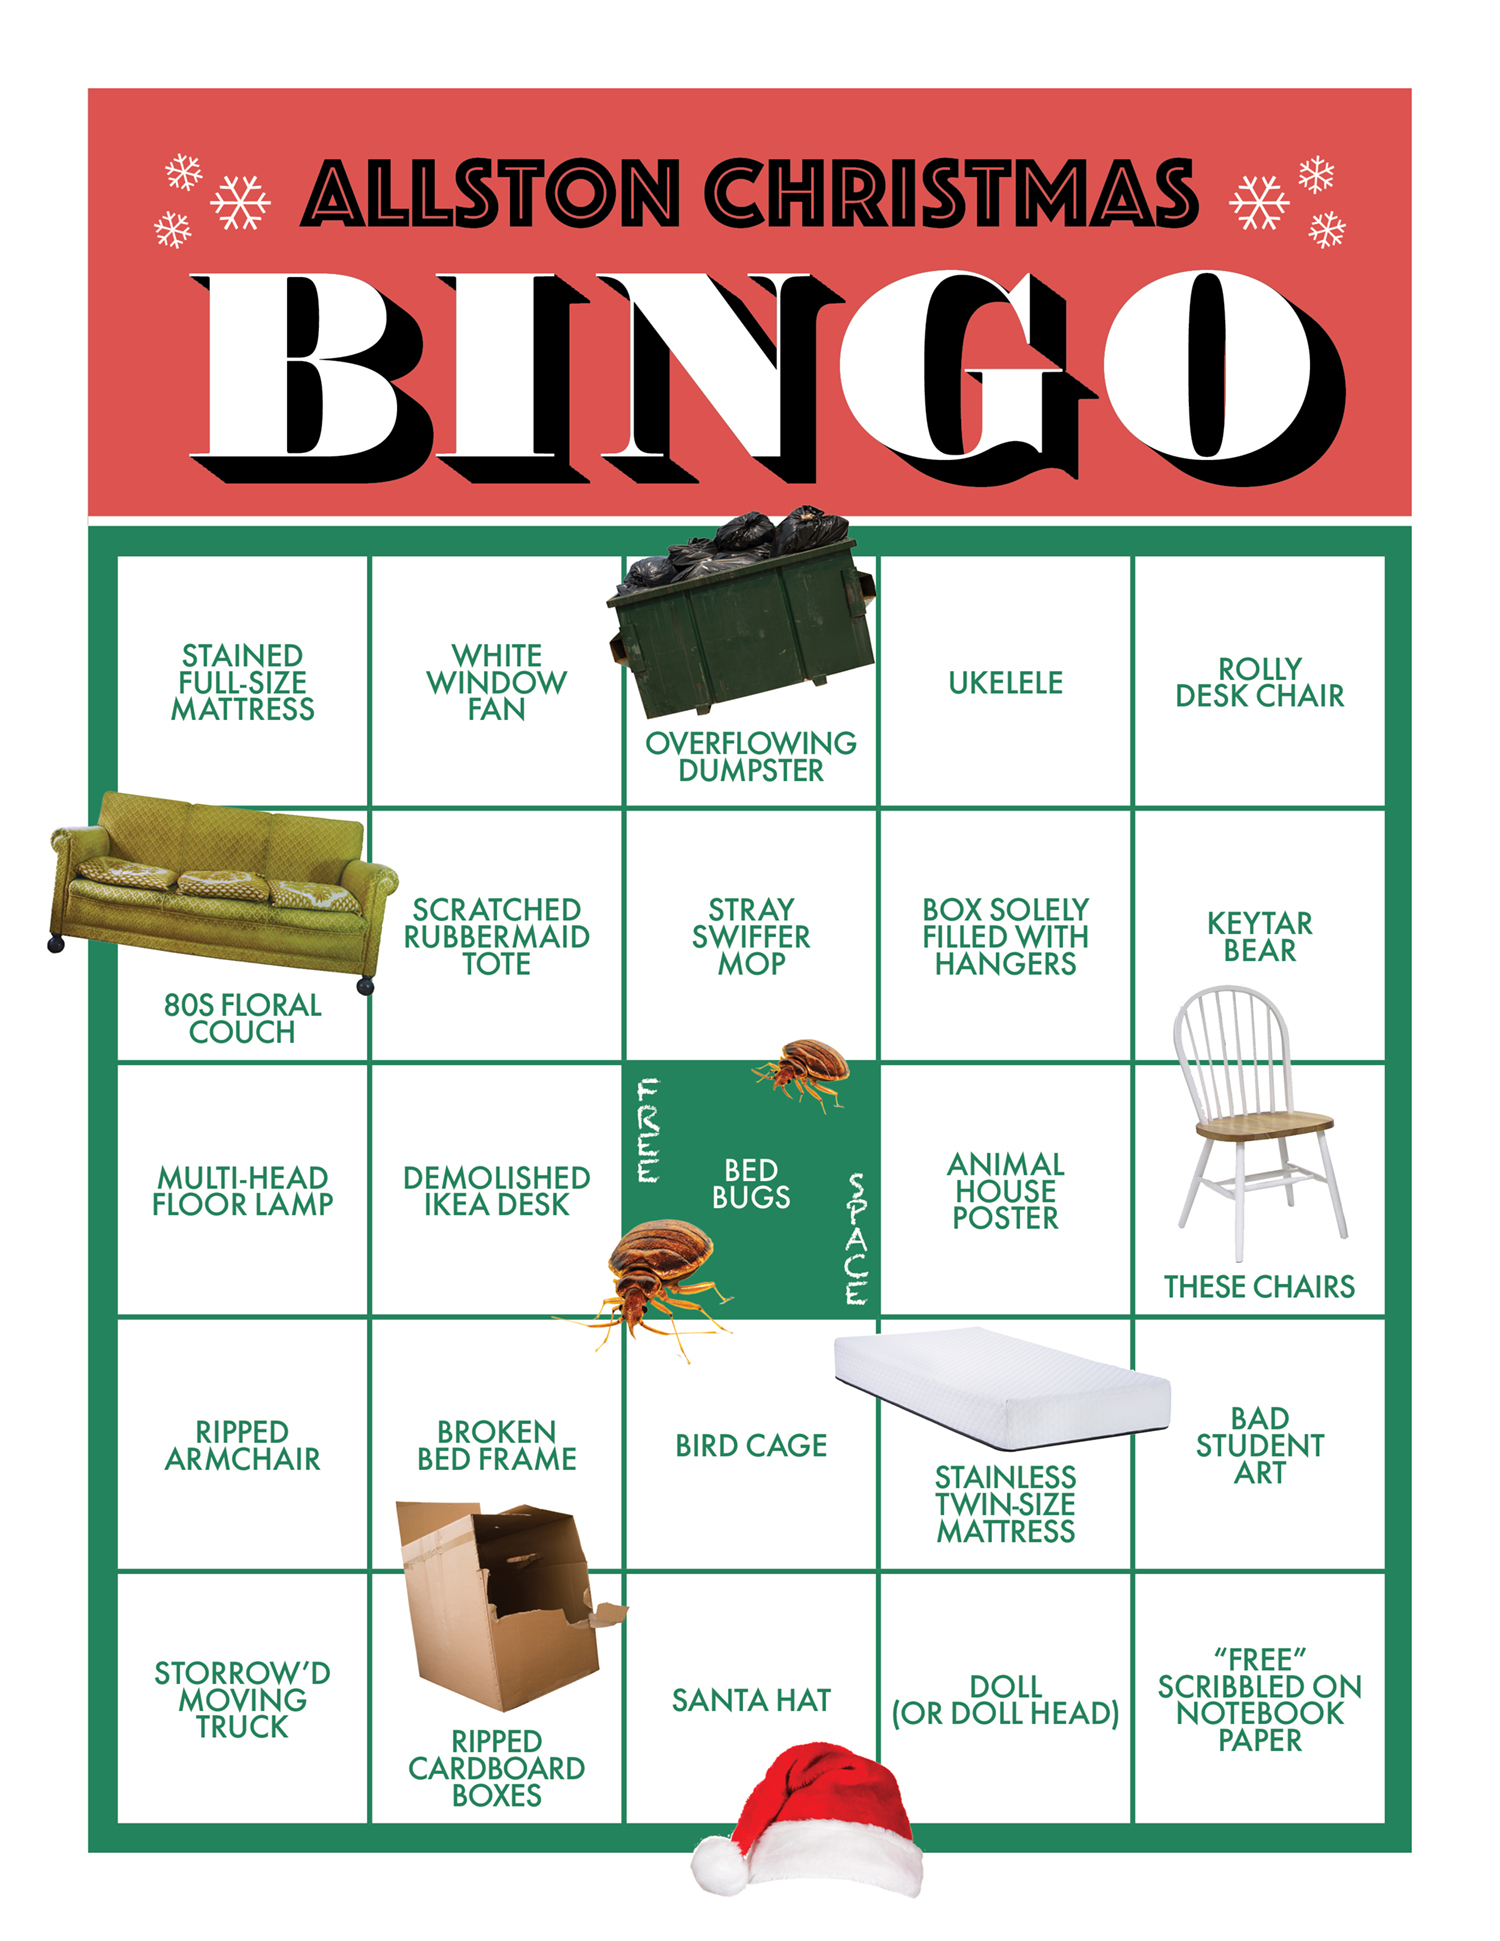 click here to print or view larger bingo card by benjamin purvis and madeline bilis images via istock - Christmas Bingo